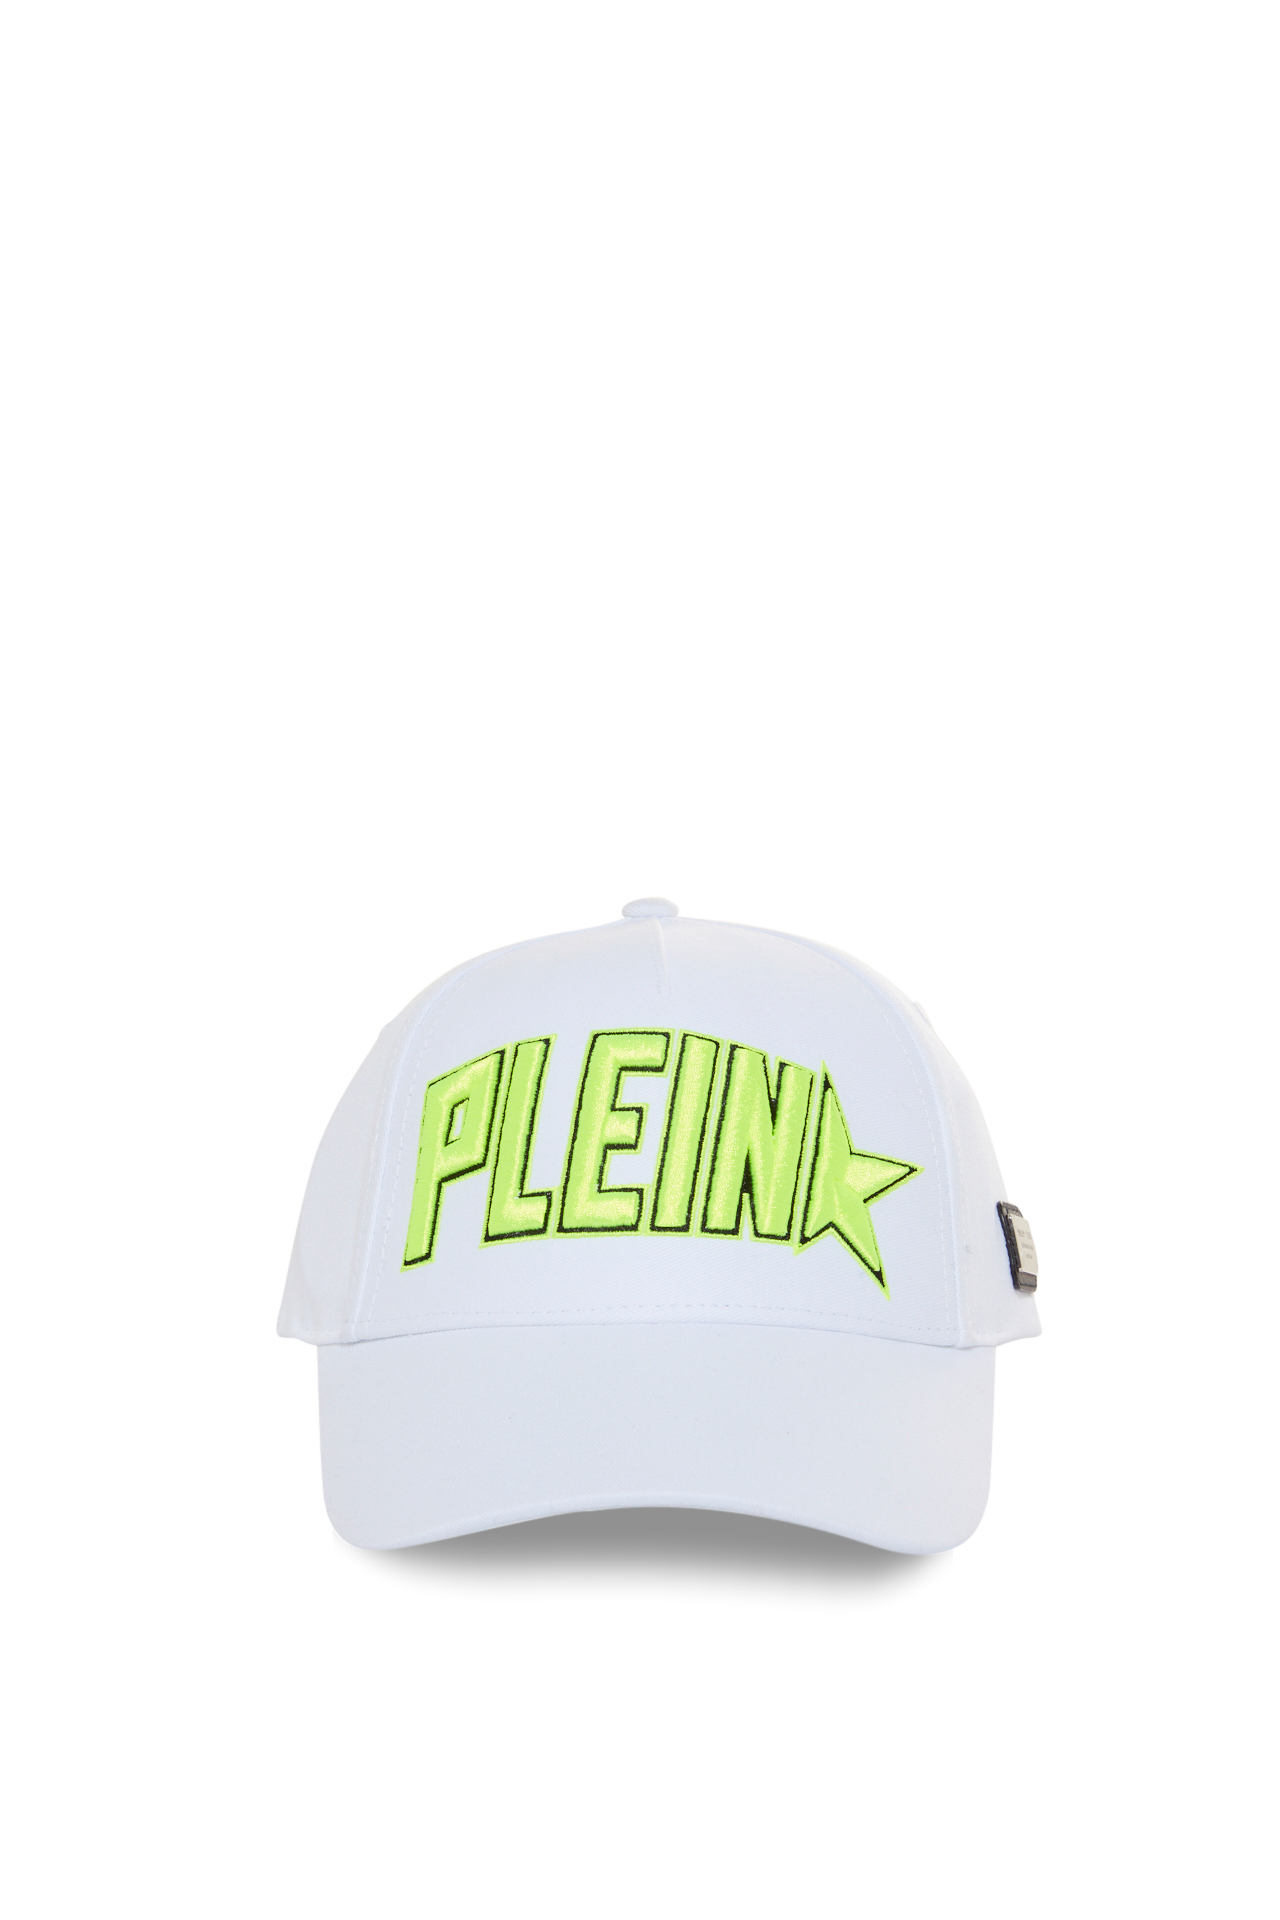 Philipp Plein Plein Star baseball cap La Vallée Village